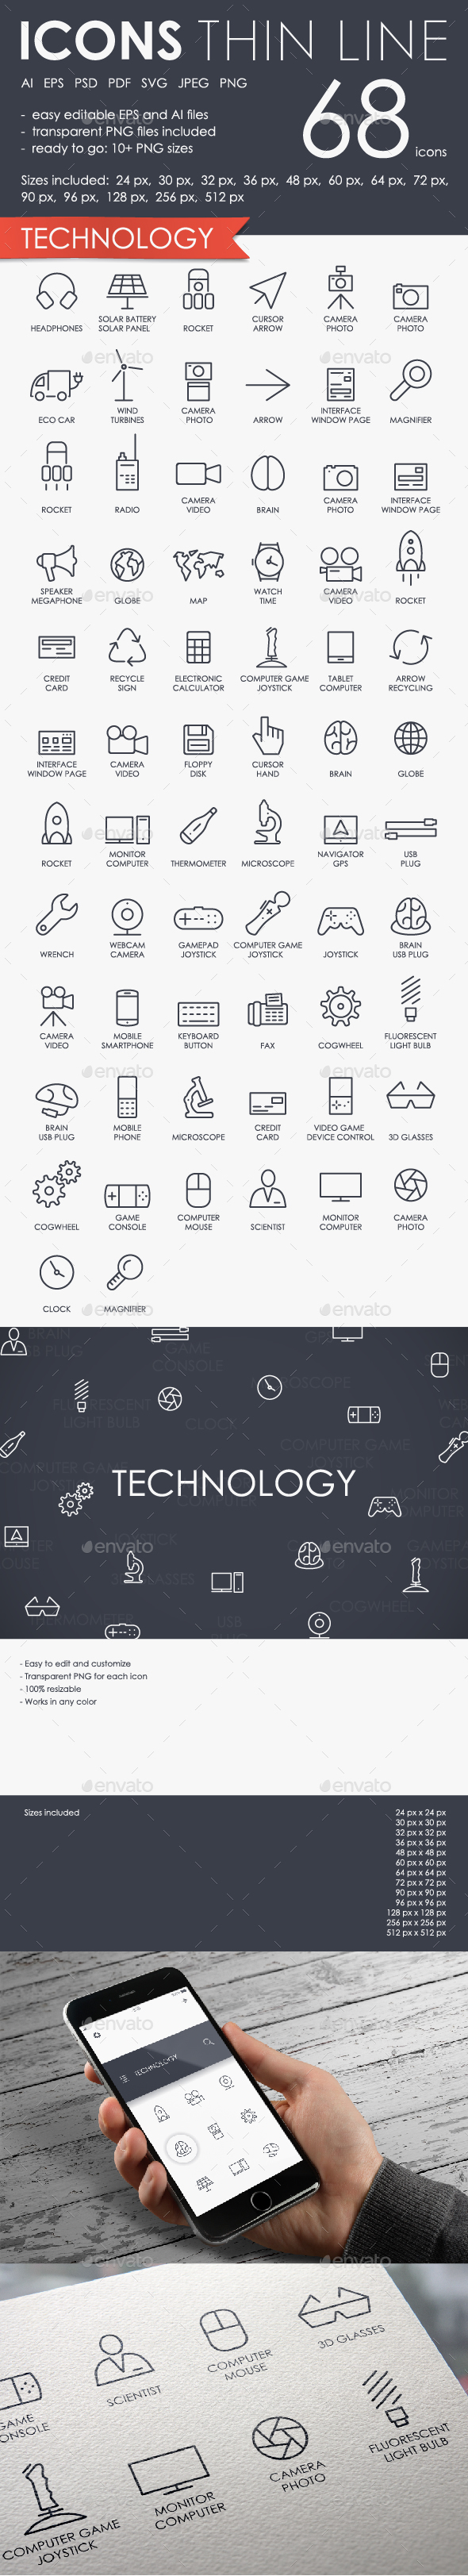 Navigation thinline icons - Technology Icons